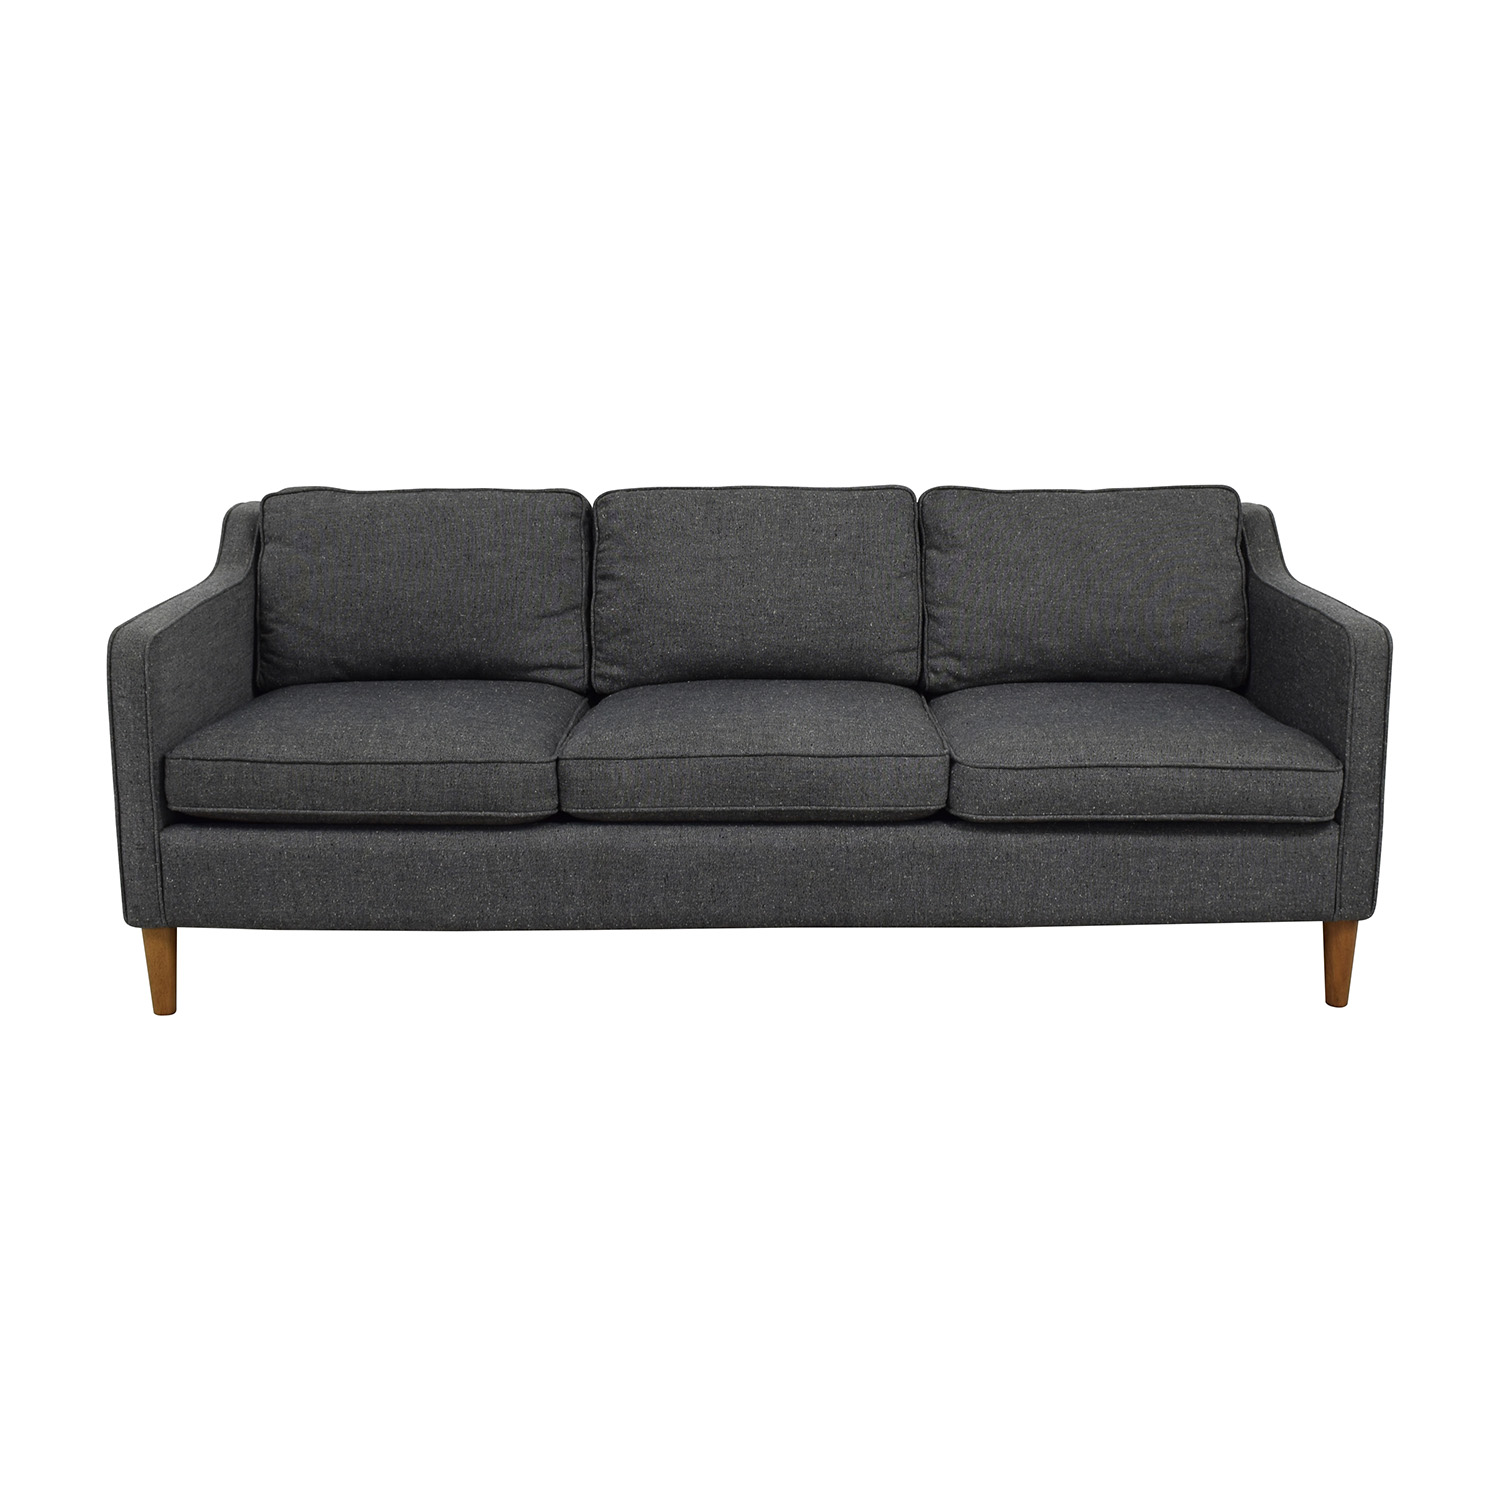 48 off west elm west elm hamilton sofa in tweed sofas for Best west elm sofa